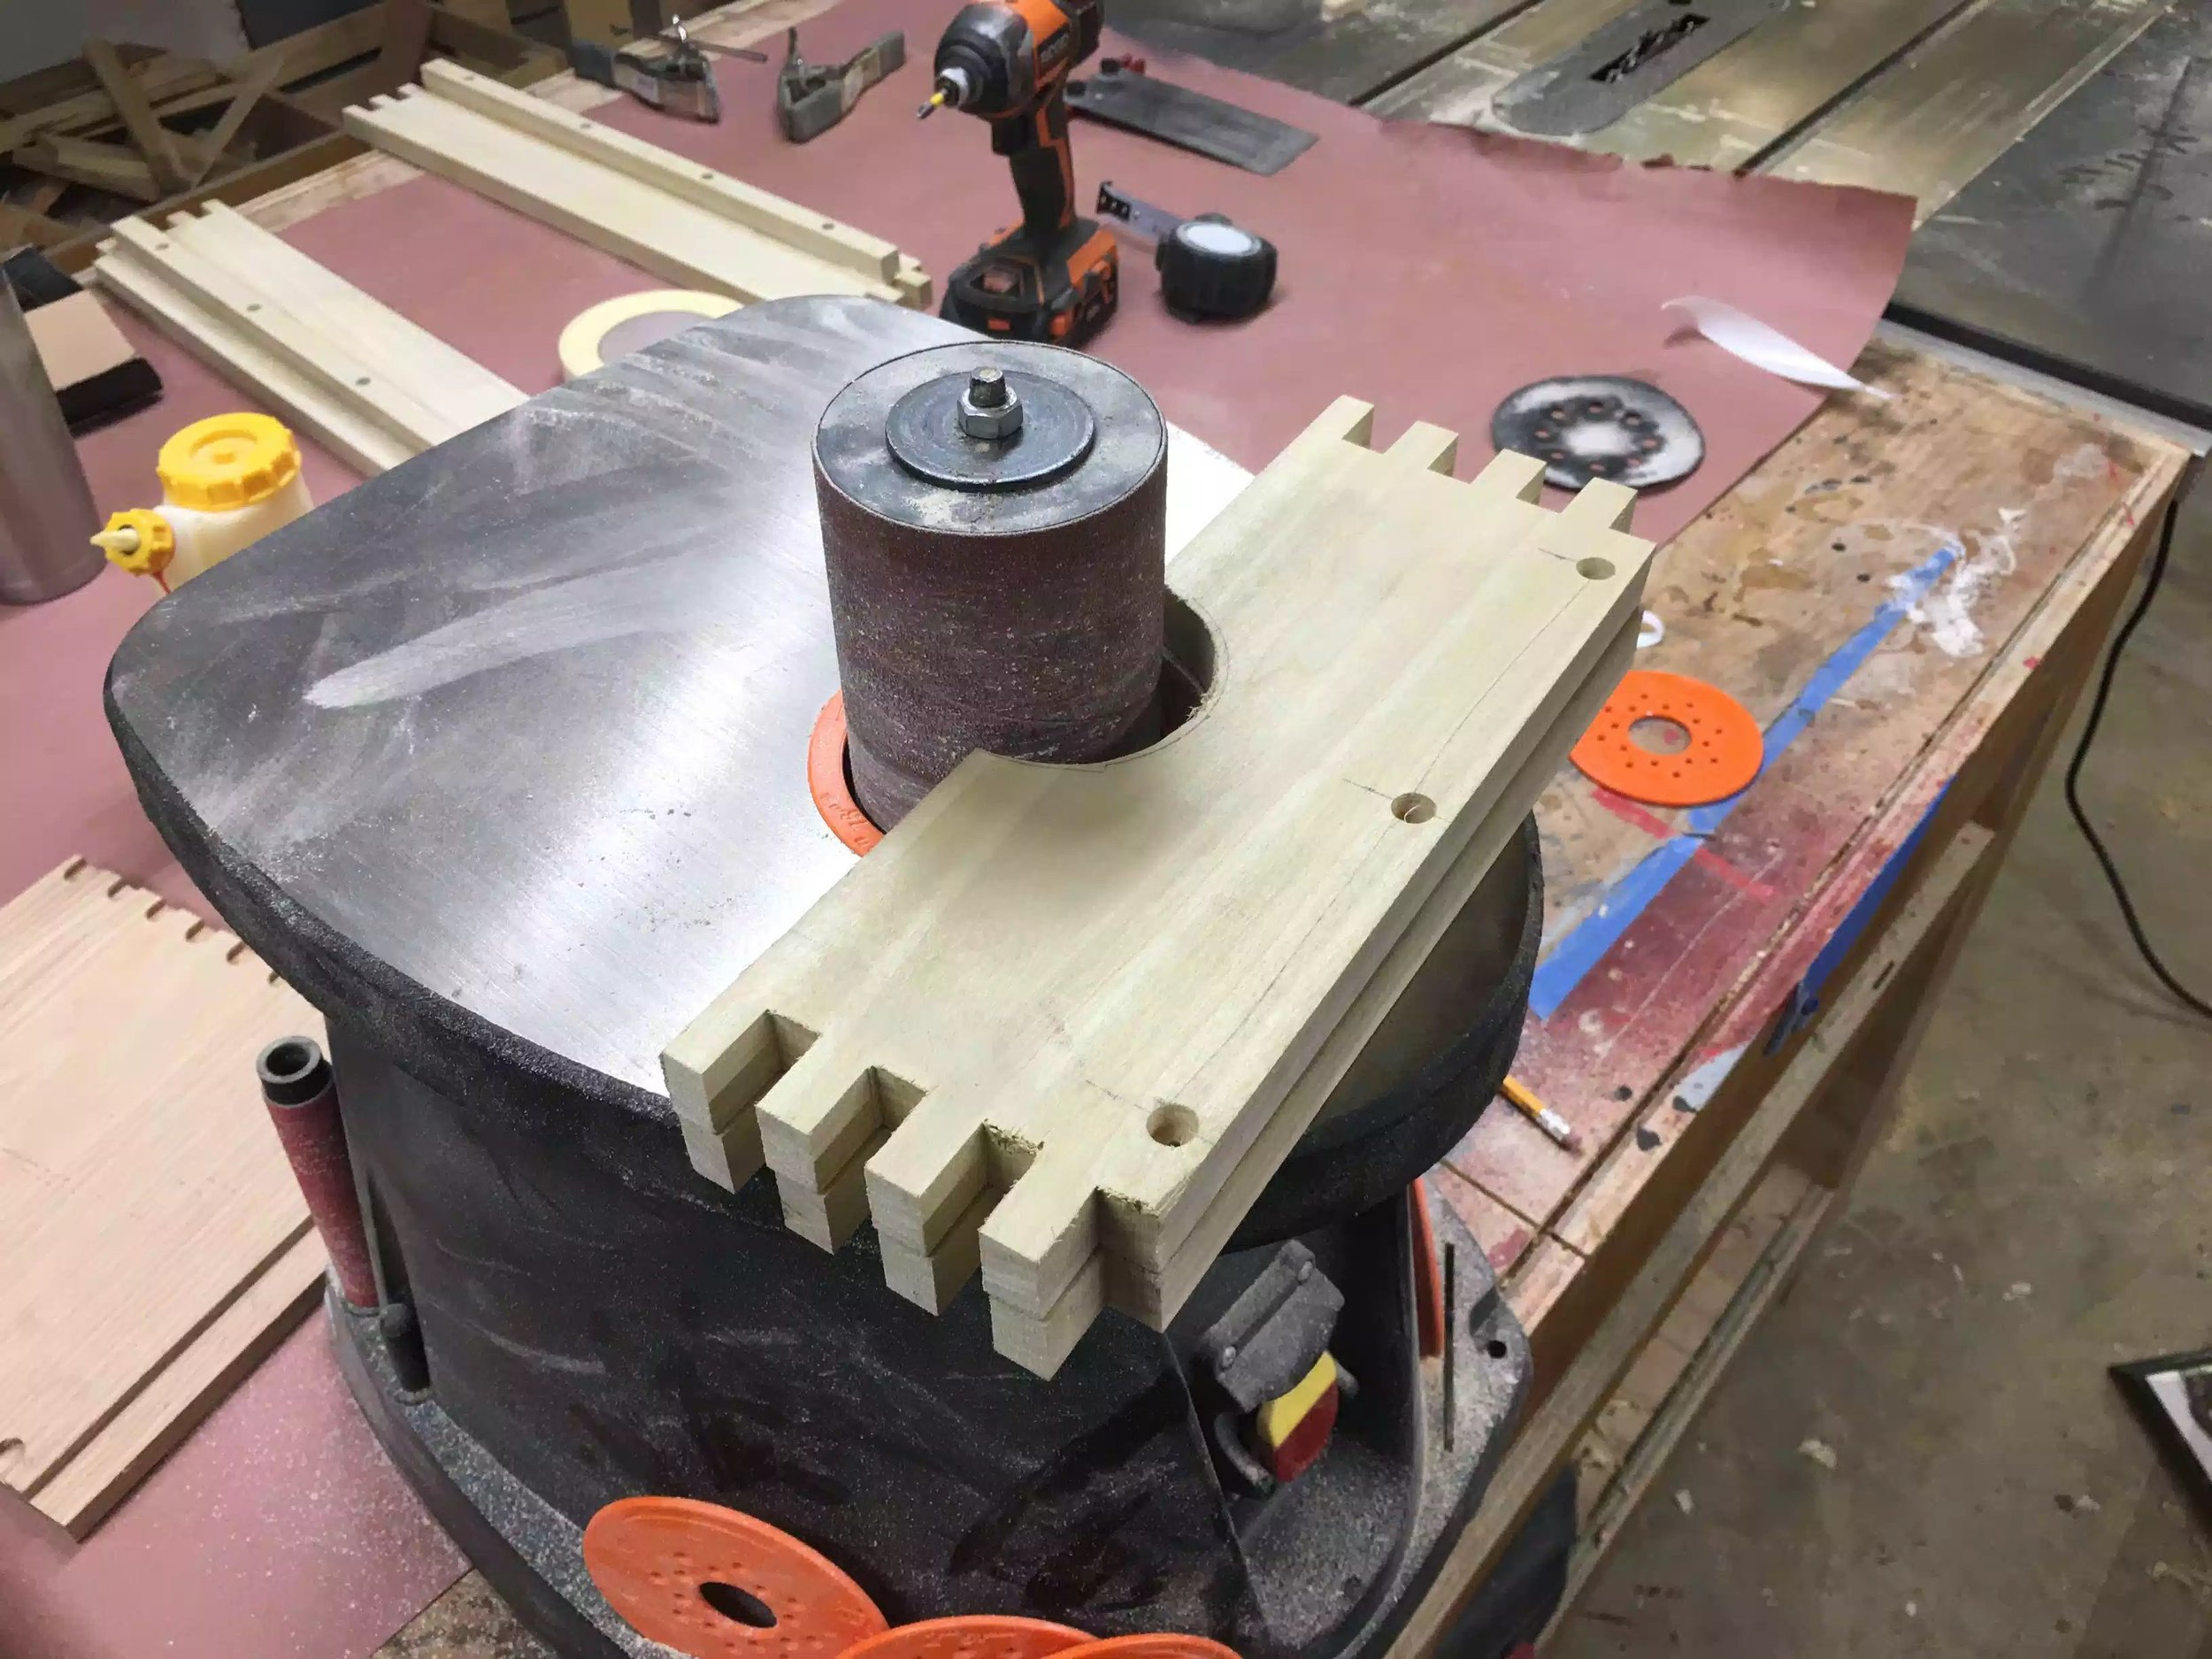 Here is the spindle sander sanding both sides to remove all the milling marks left by the band saw.